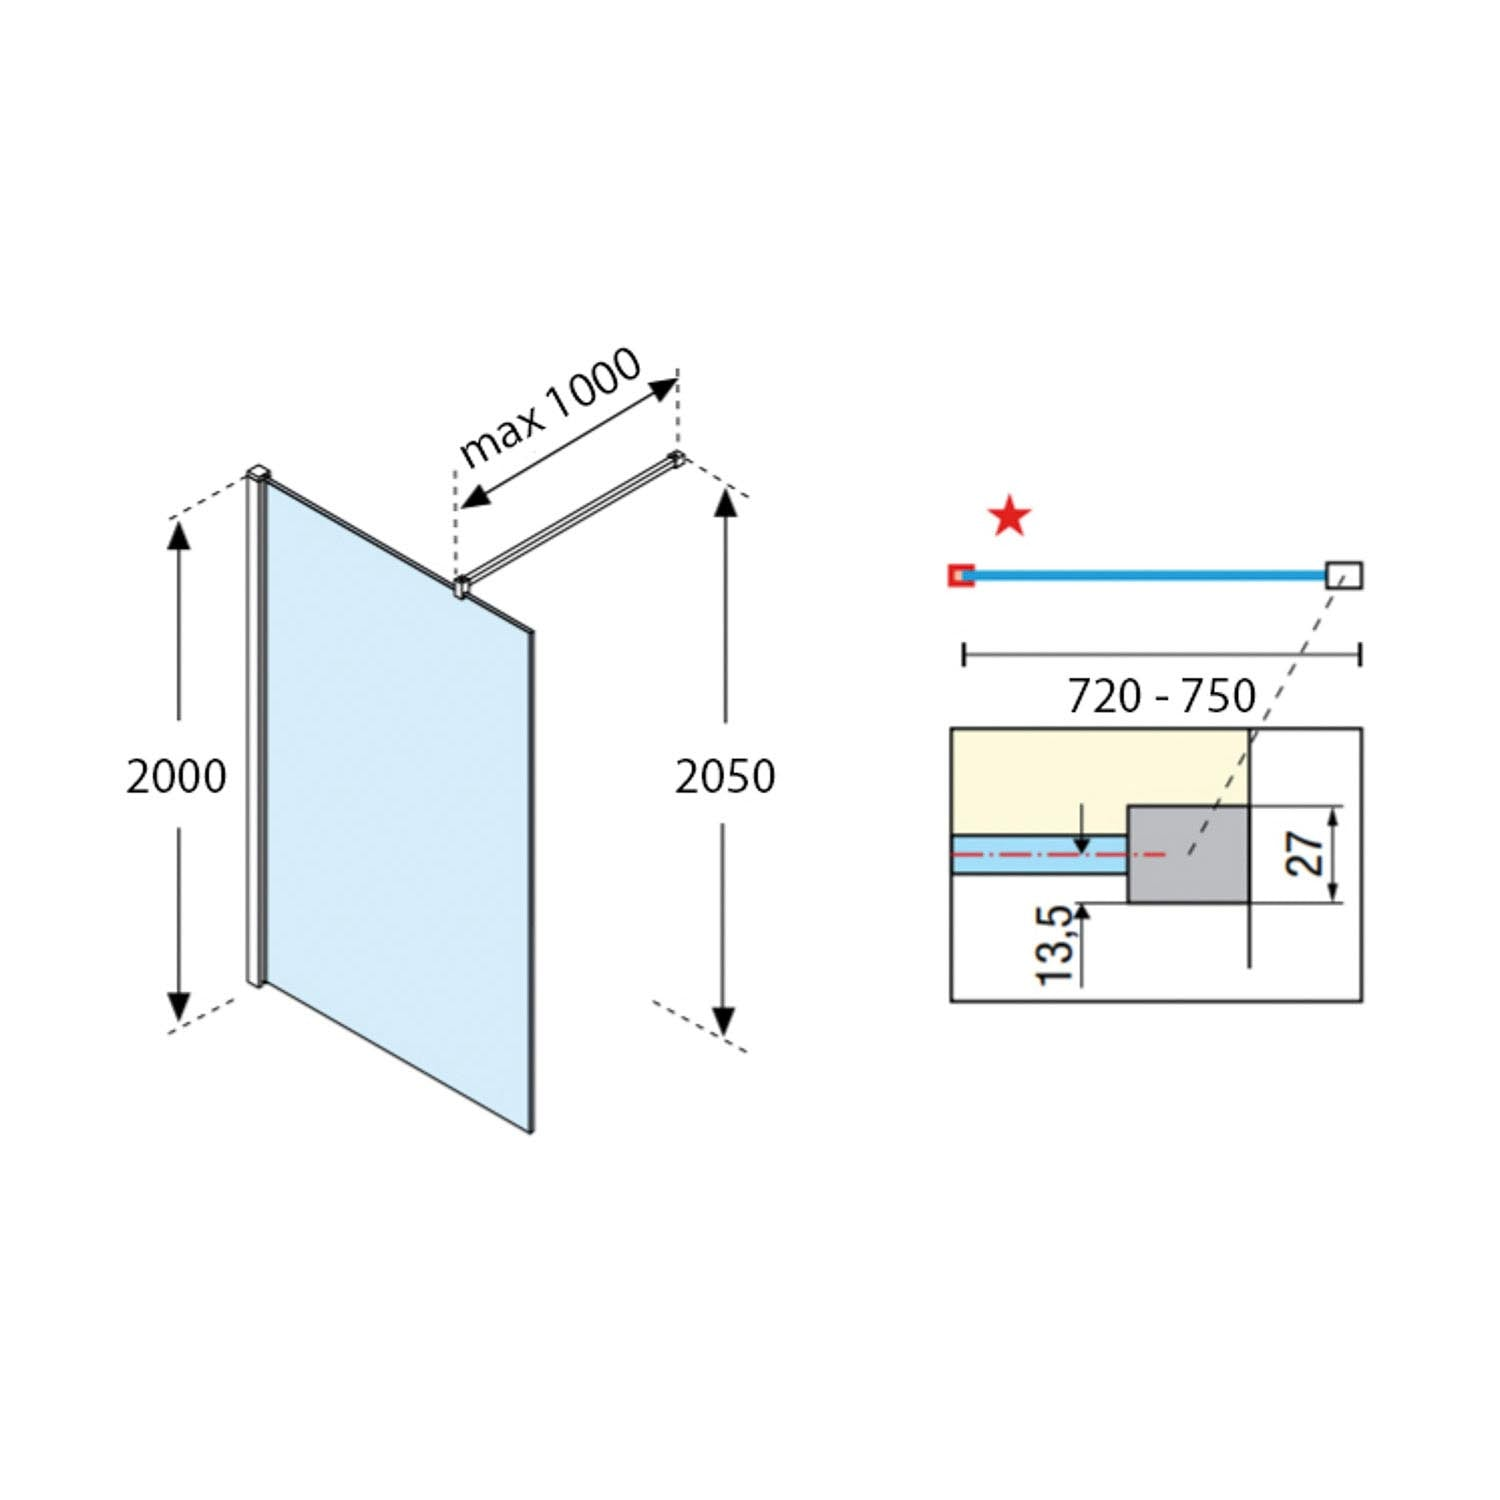 720-750mm Ergo Wet Room Screen Satin Band Glass with a chrome finish dimensional drawing